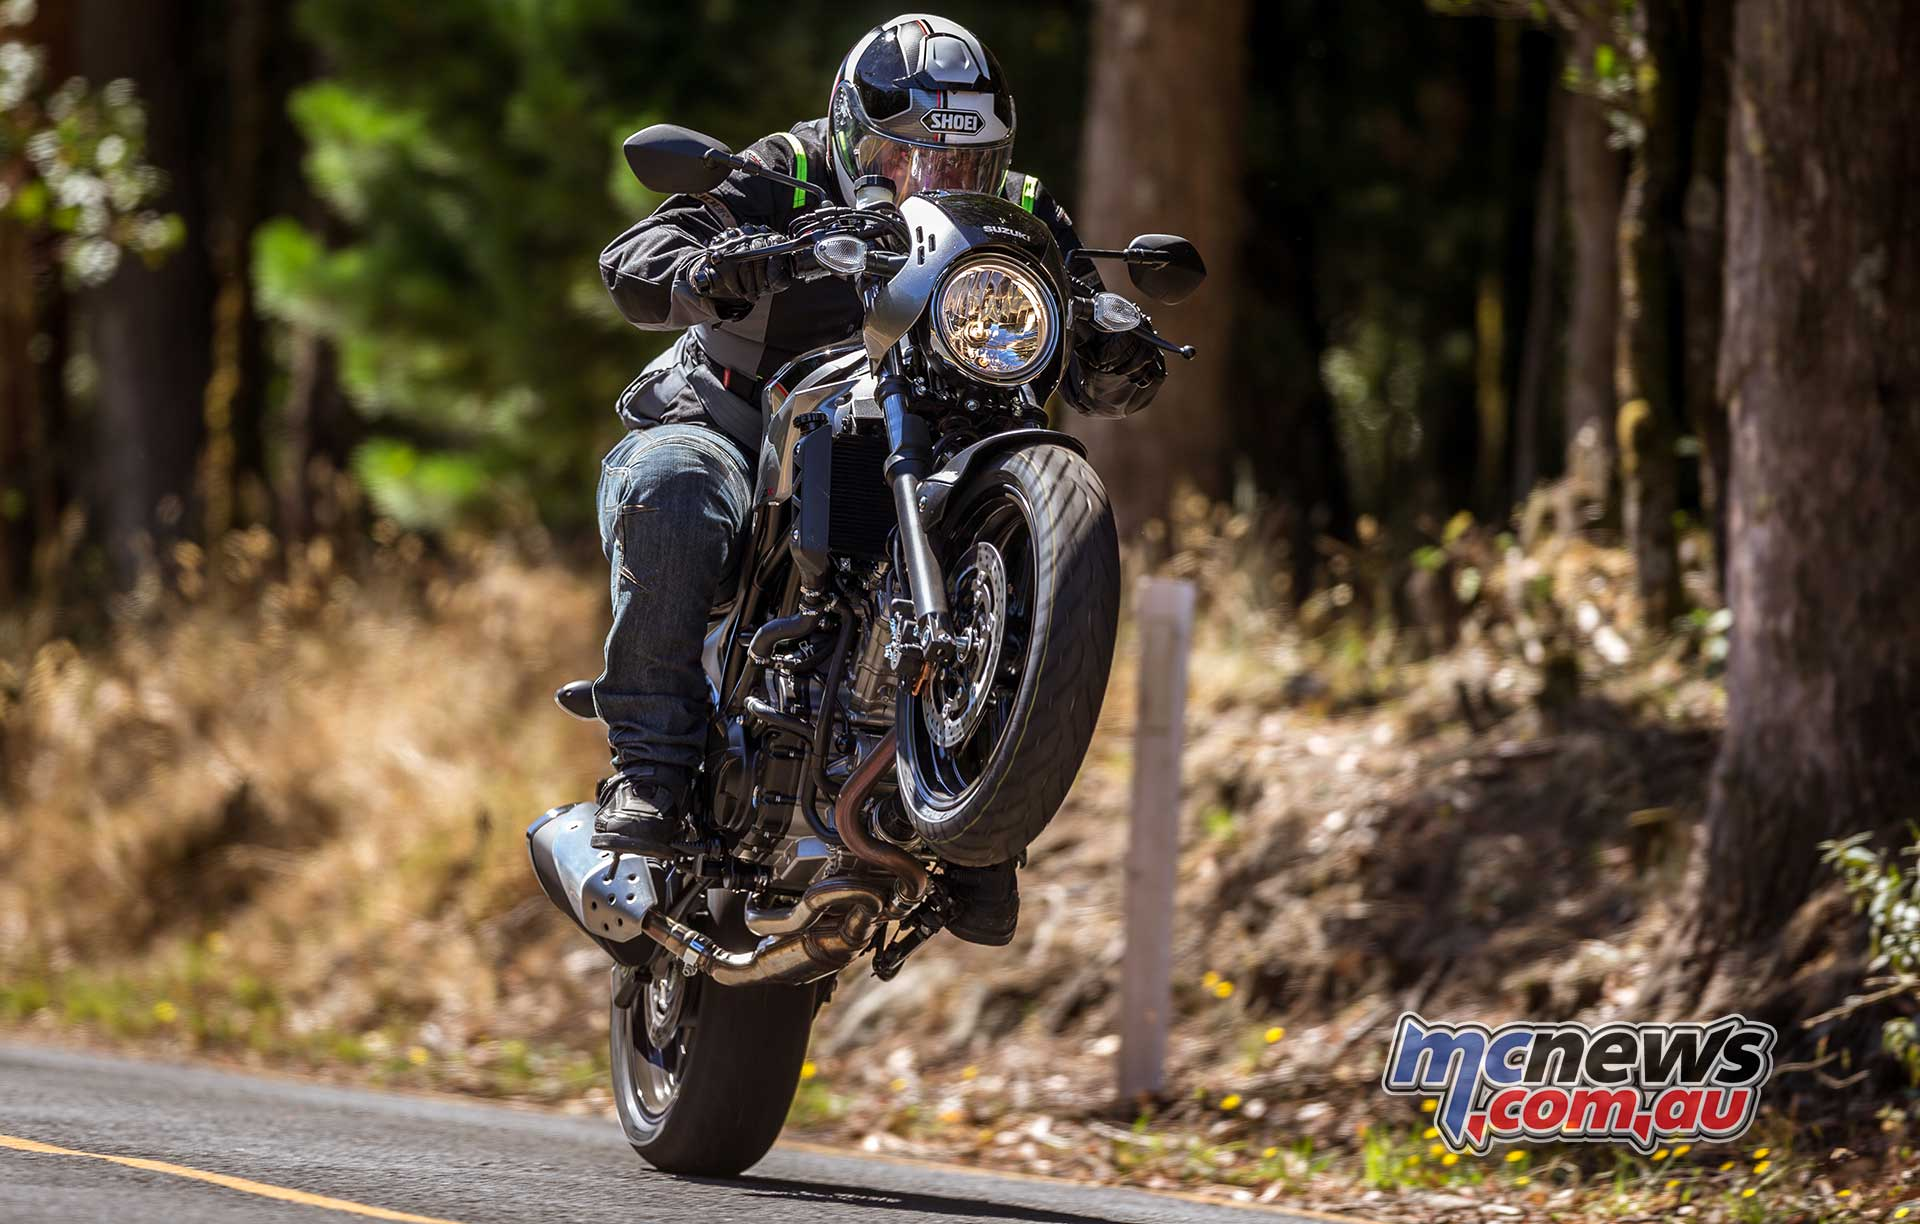 Groovy 2018 Suzuki Sv650X Review Motorcycle Test Mcnews Com Au Pdpeps Interior Chair Design Pdpepsorg